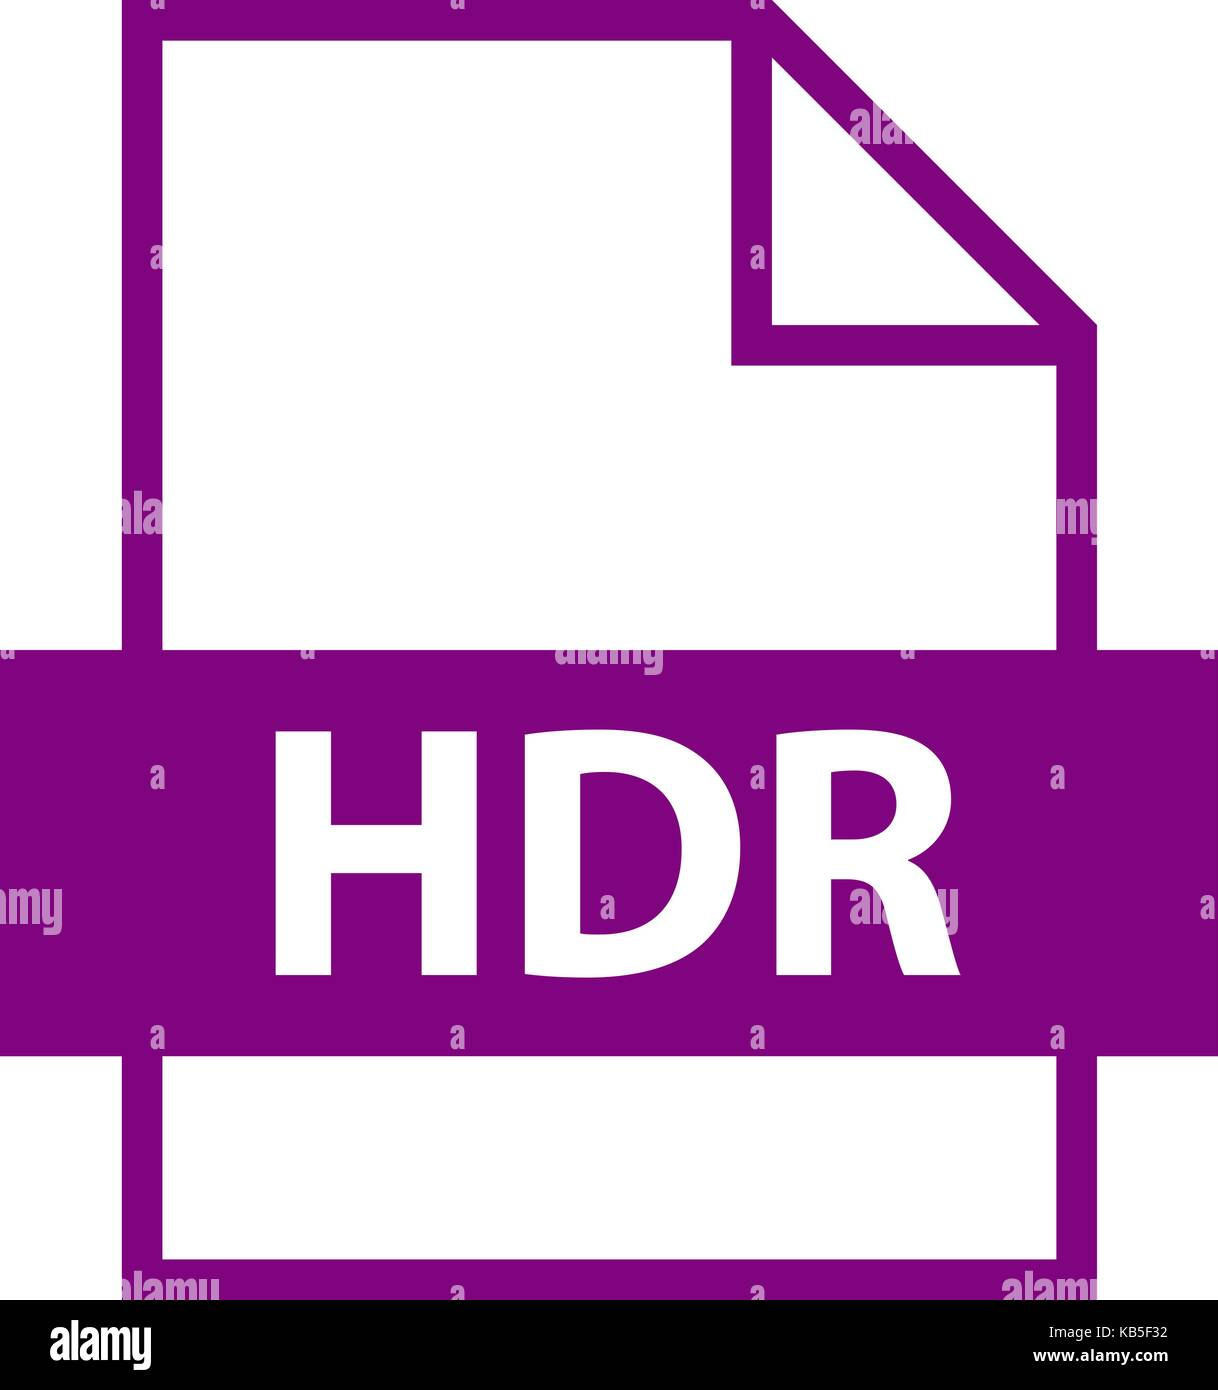 use it in all your designs filename extension icon hdr high dynamic rh alamy com file extension htri file extension hdt